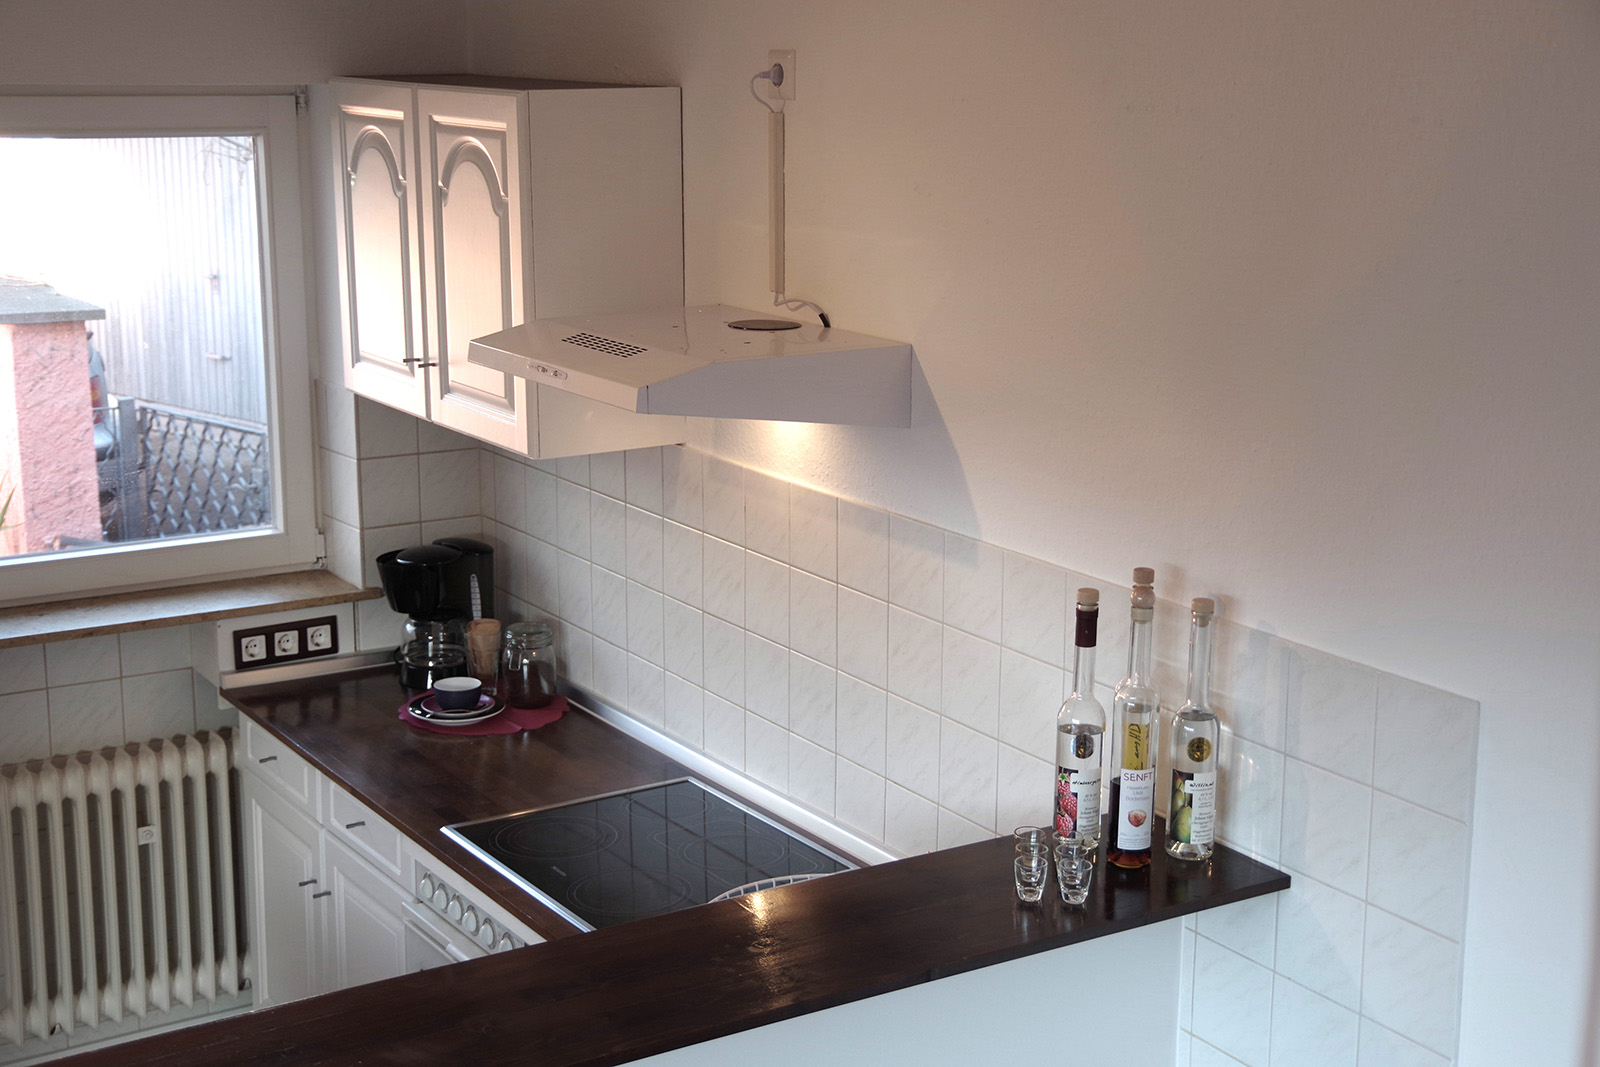 Holiday apartments on Lake Constance: Familienhafen - Kitchen